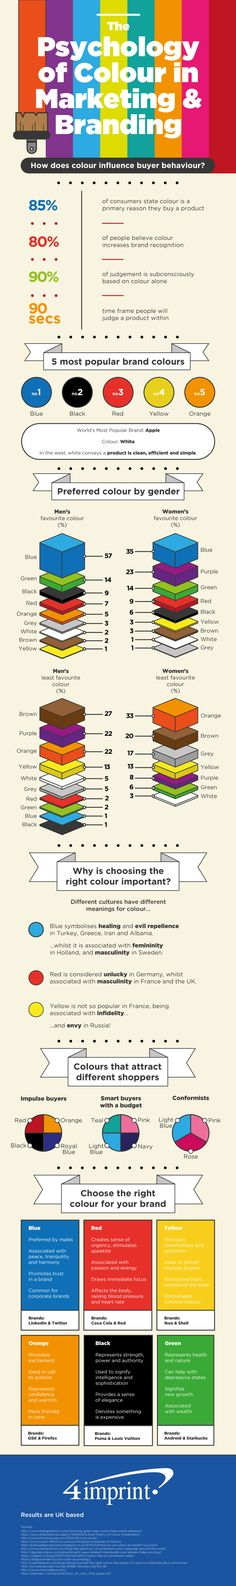 psychology of colour infographic More